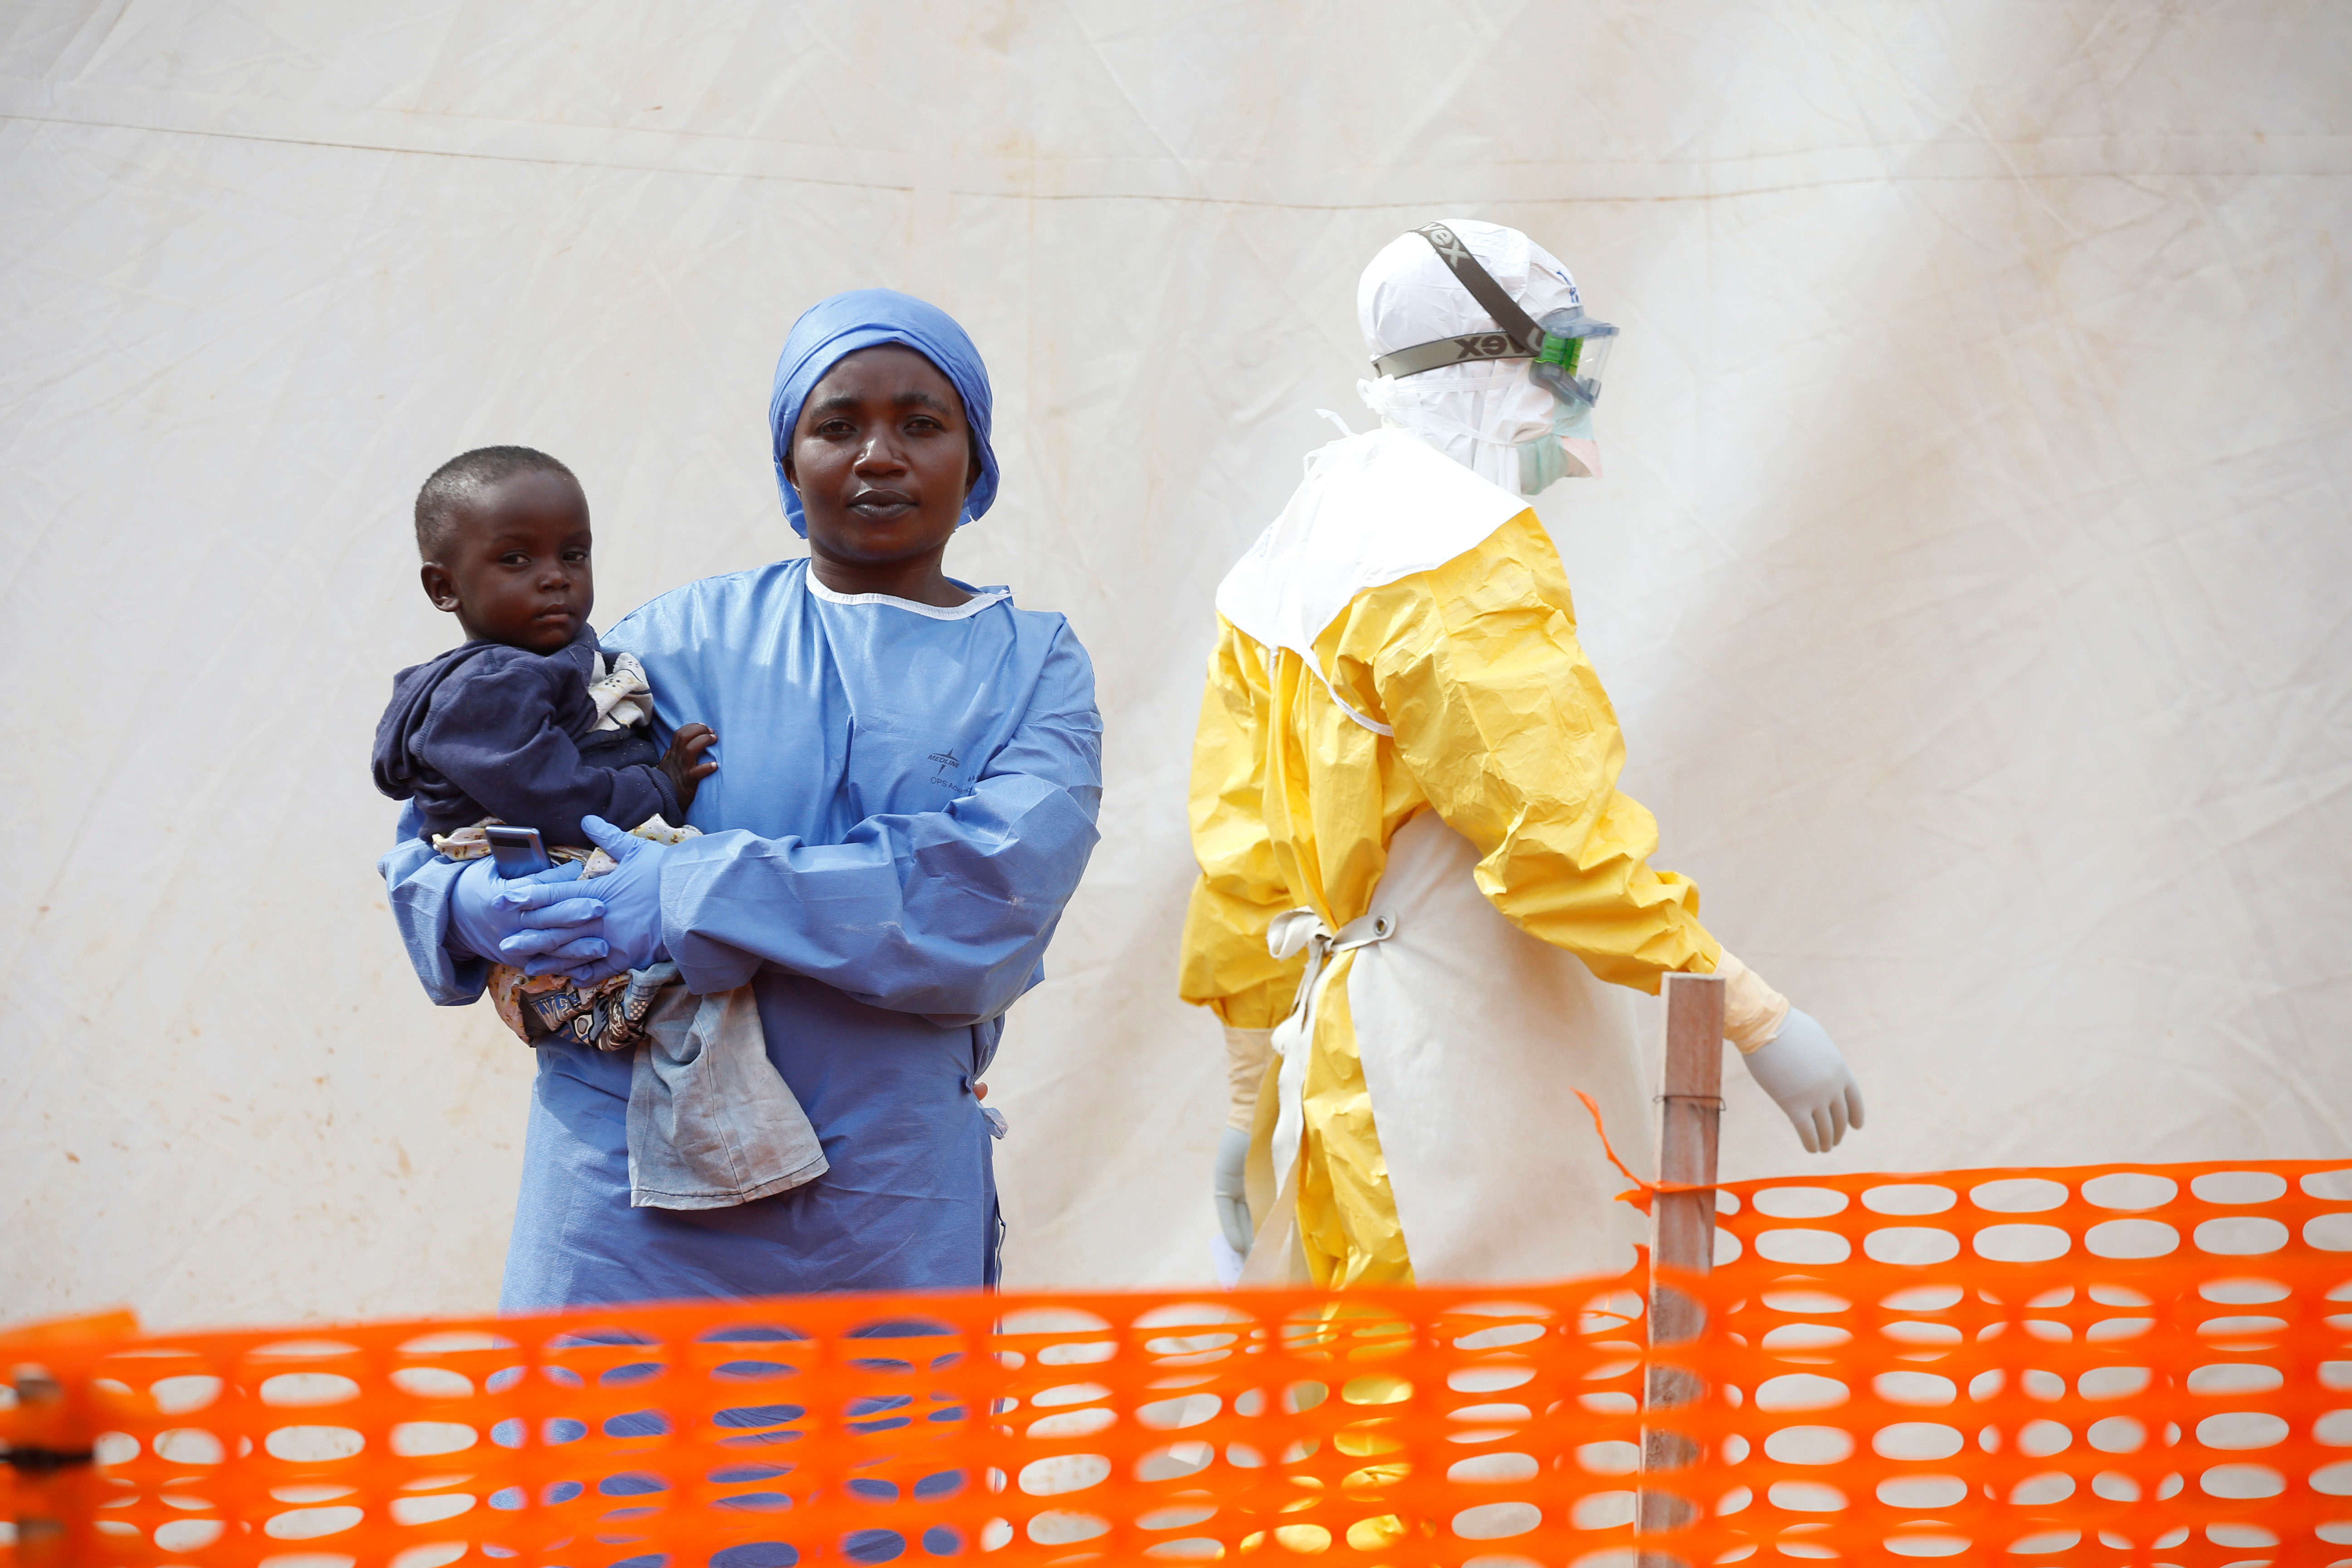 Mwamini Kahindo, an Ebola survivor working as a caregiver to babies who are confirmed Ebola cases, holds an infant outside the red zone at the Ebola treatment centre in Butembo, Democratic Republic of Congo, March 25, 2019. Picture taken March 25, 2019. REUTERS/Baz Ratner - RC1F947ED5F0